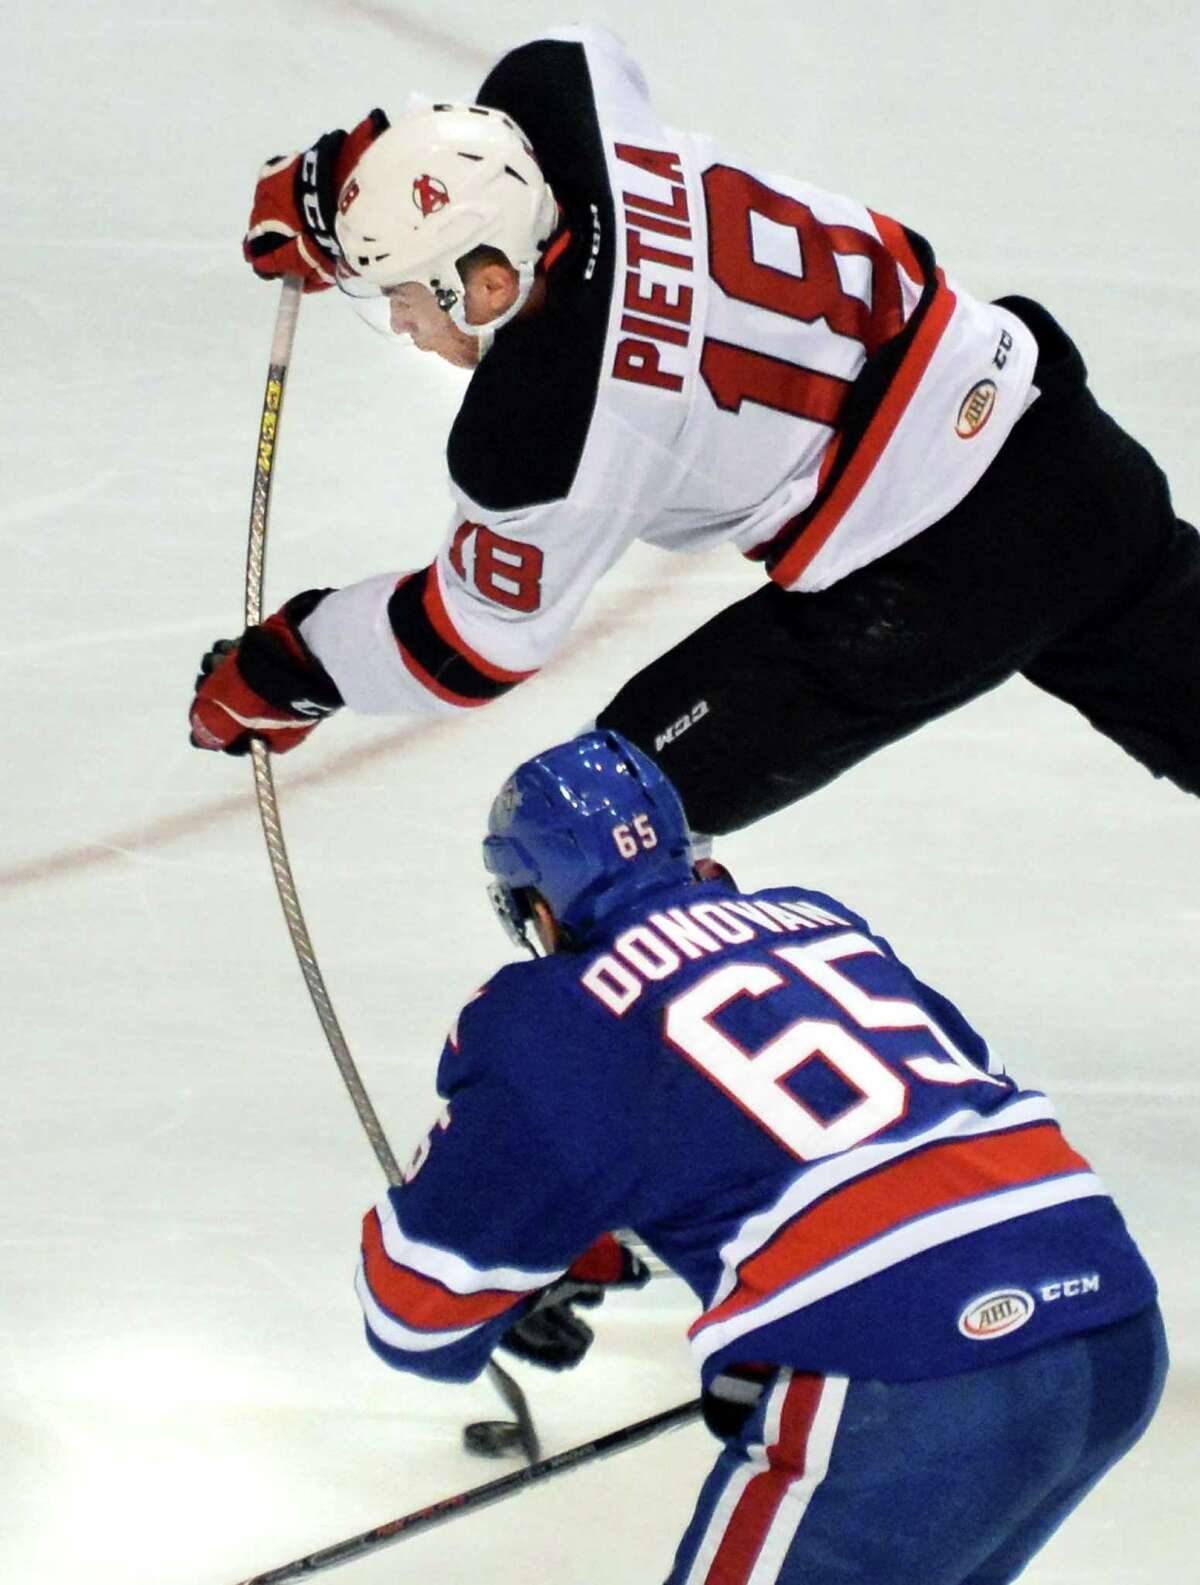 Albany Devils' #18 Blake Pietila, top, gets off a shot as Rochester Americans' #65 Matt Donovan defends during Saturday's game at the Times Union Center Dec. 5, 2015 in Albany, NY. (John Carl D'Annibale / Times Union)